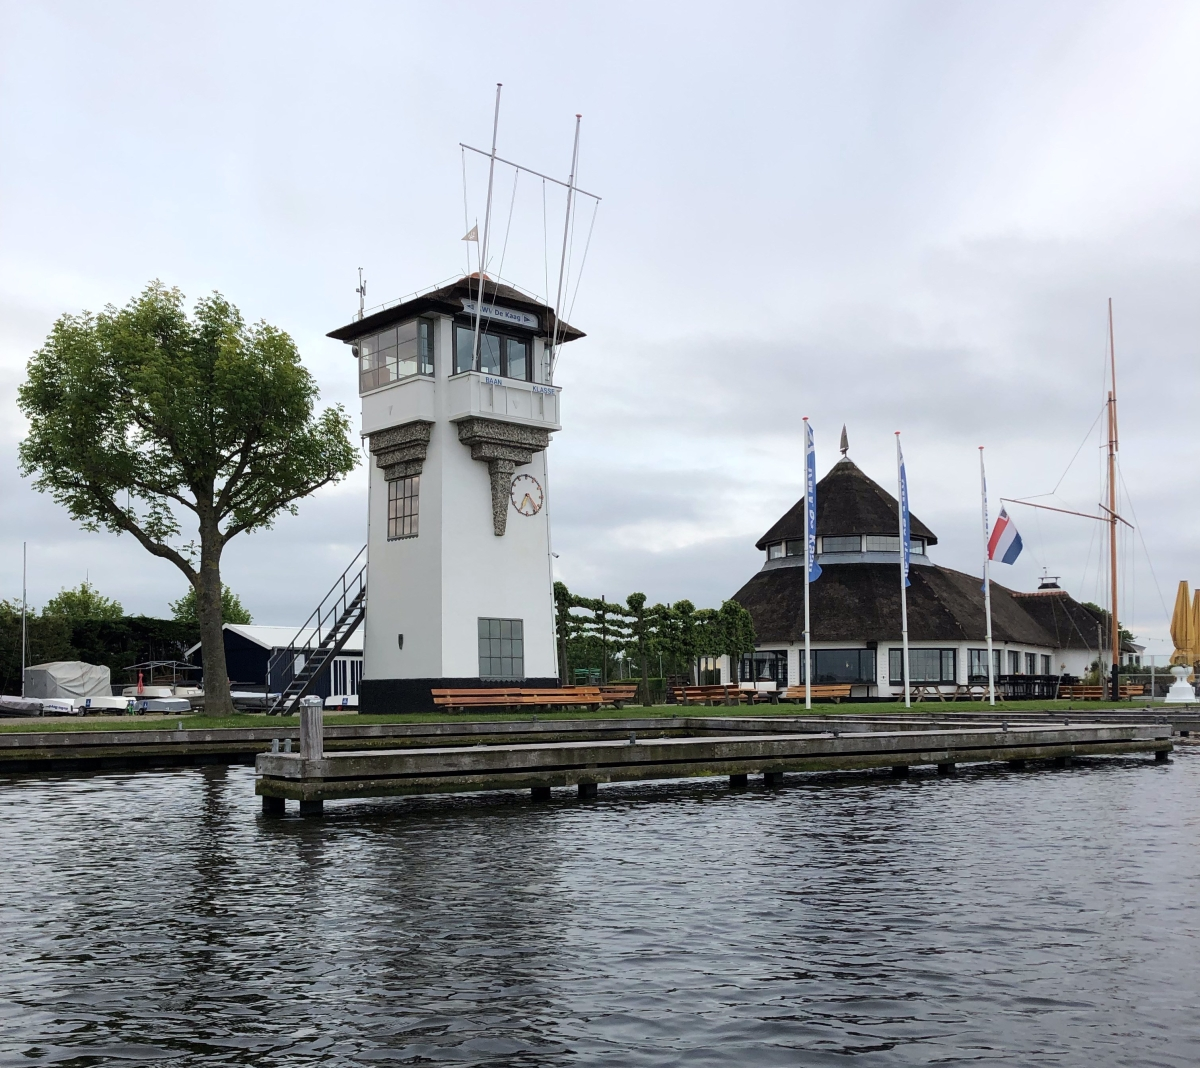 Royal Water Sport Club De Kaag